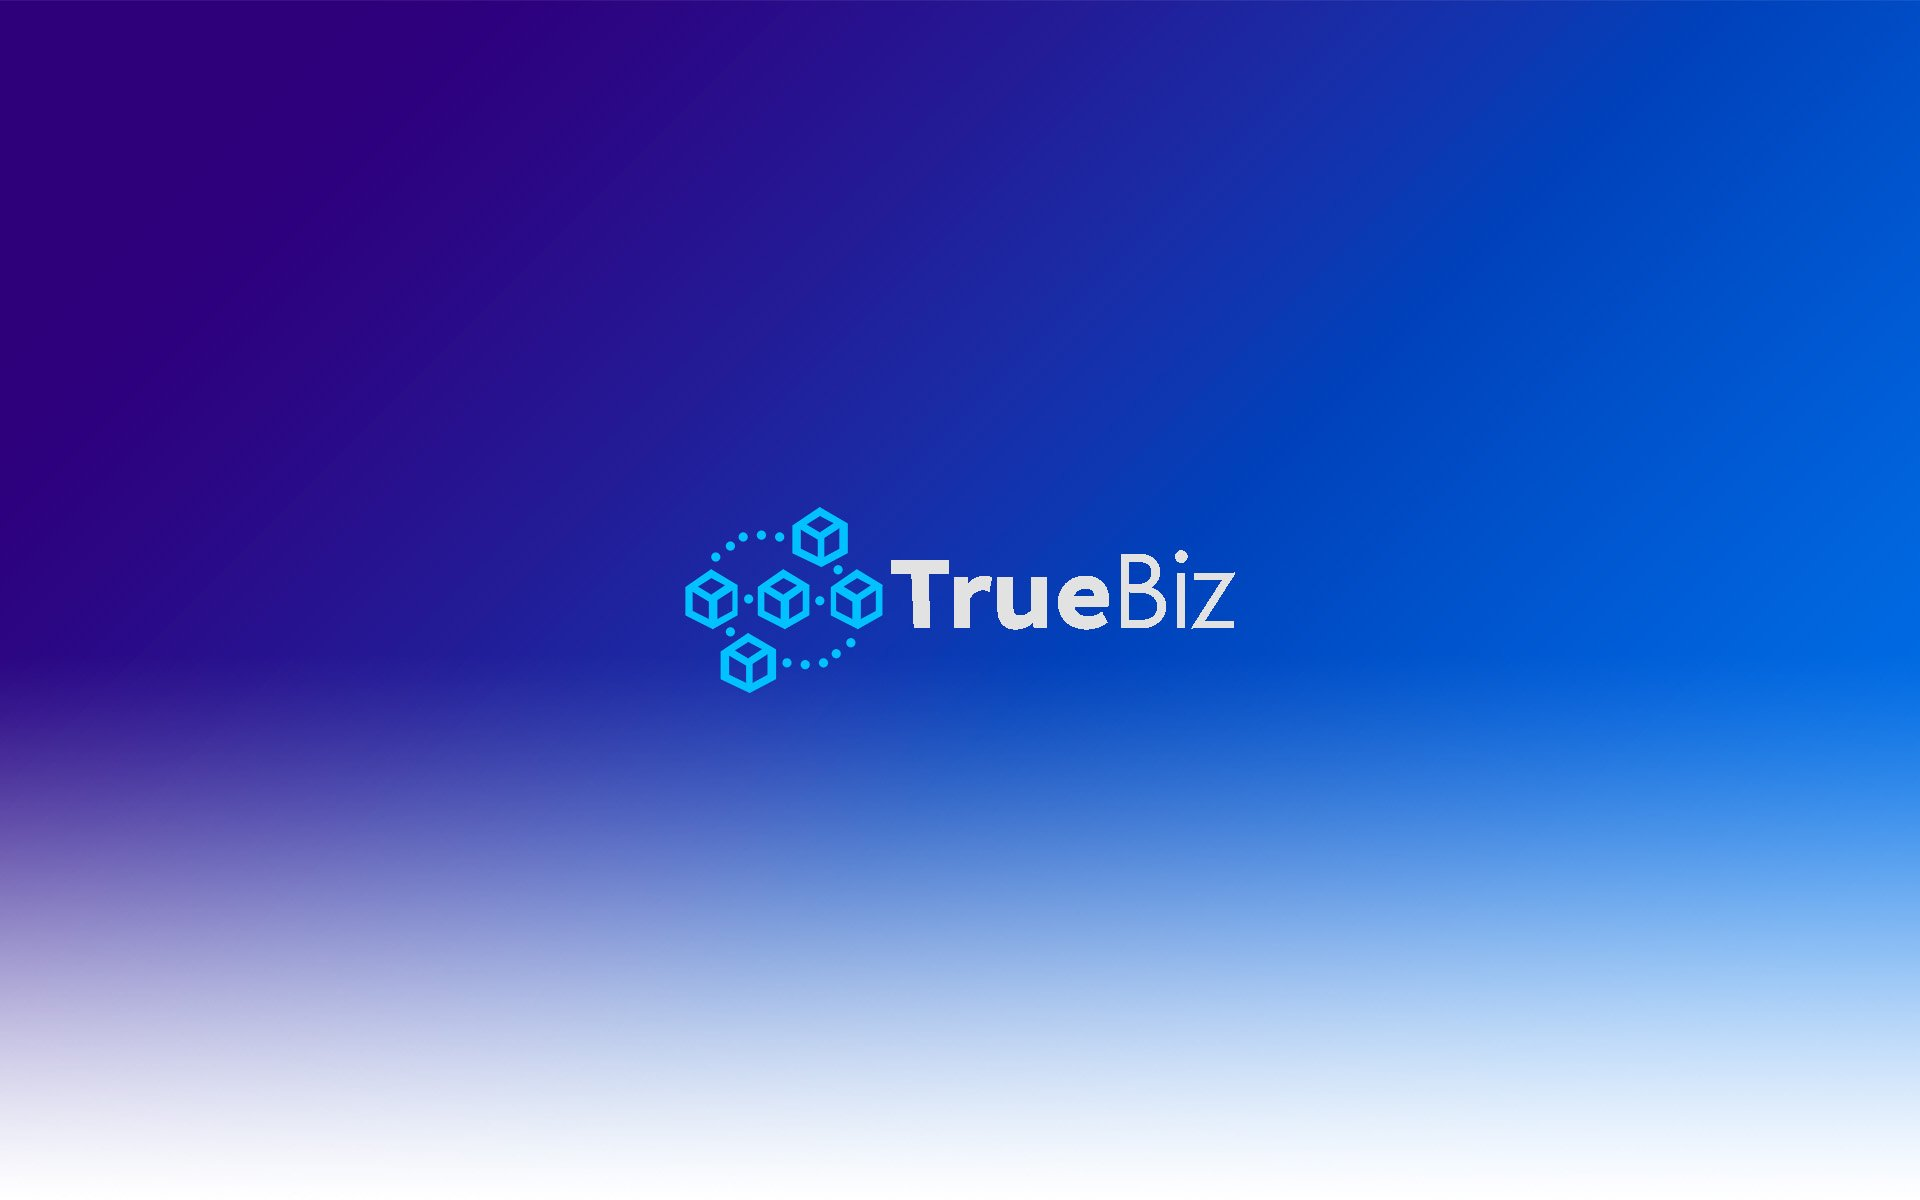 TrueBiz.io Prepares To Launch ICO That Will Bridge The Gap Between Real Businesses & The Blockchain By Seamlessly Converting Crypto To Fiat